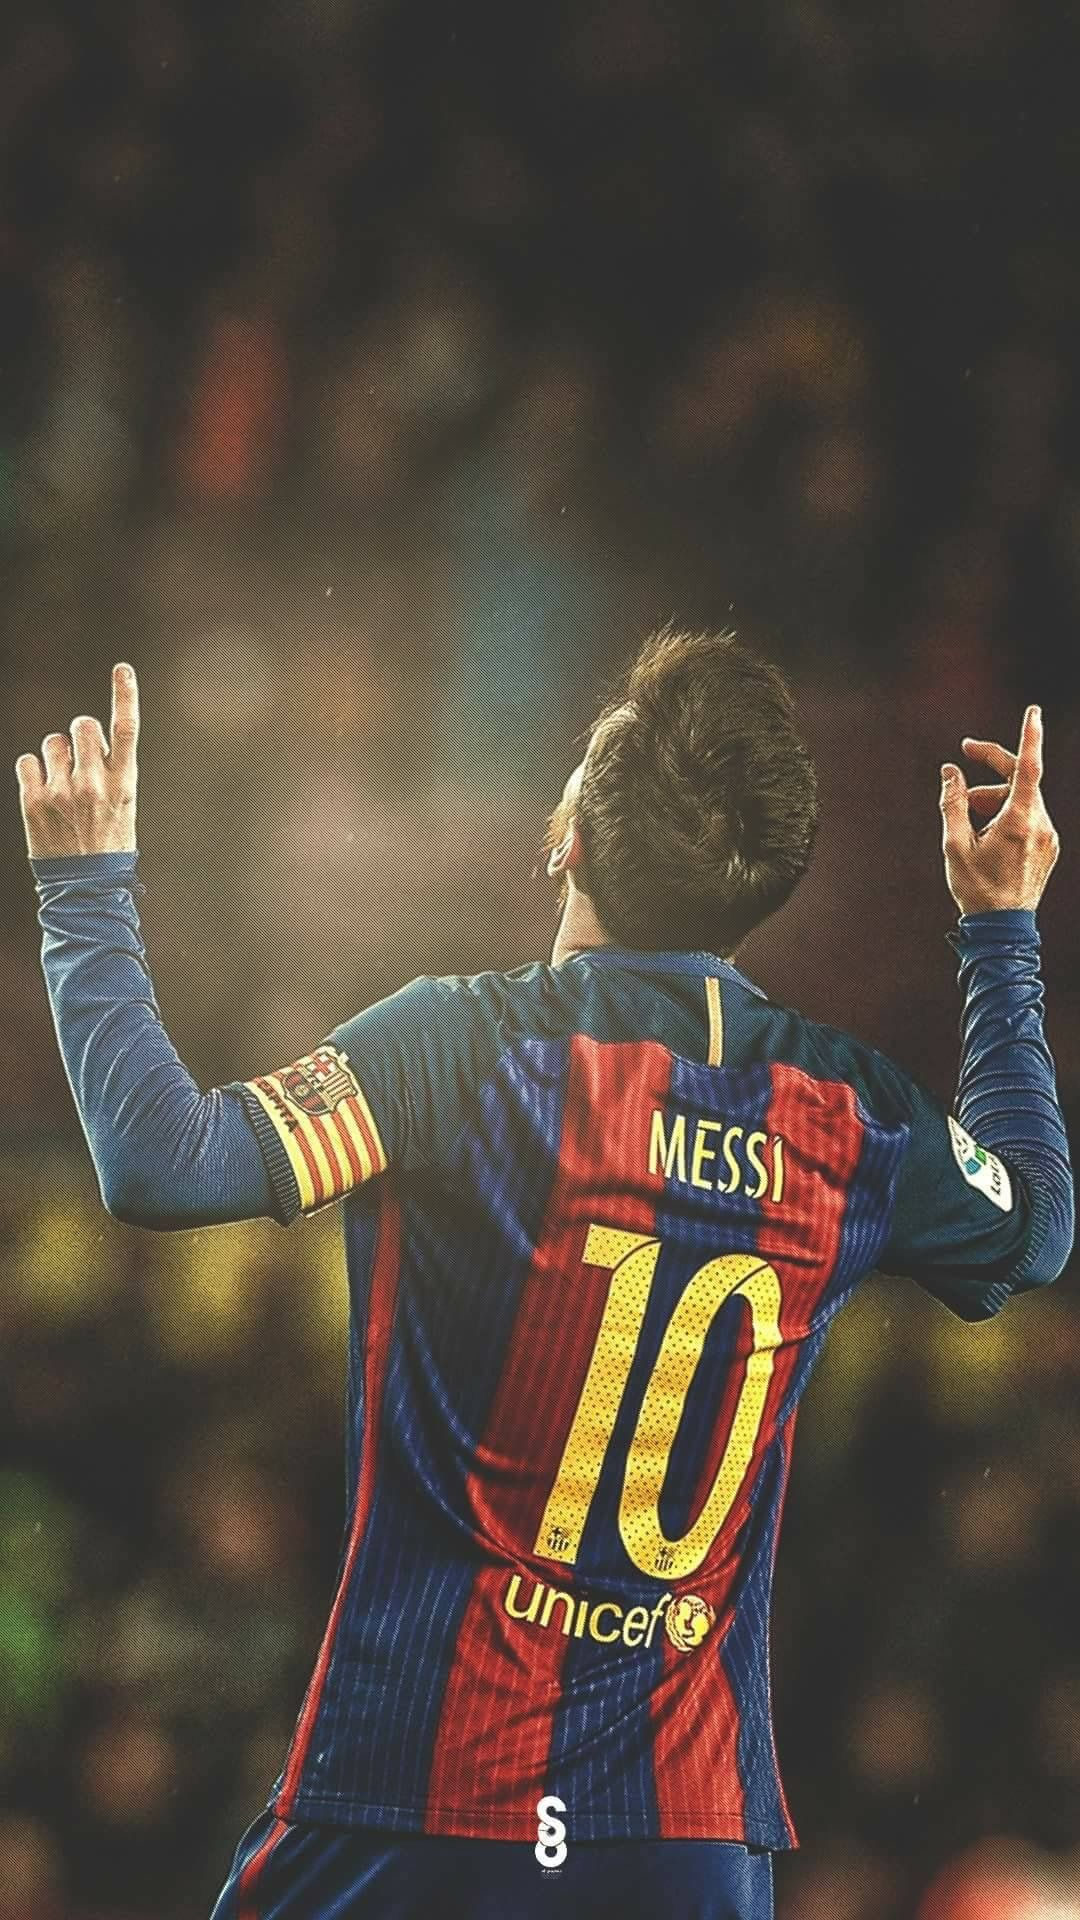 G.O.A.T | Messi | Lionel messi wallpapers, Messi, Leonel messi